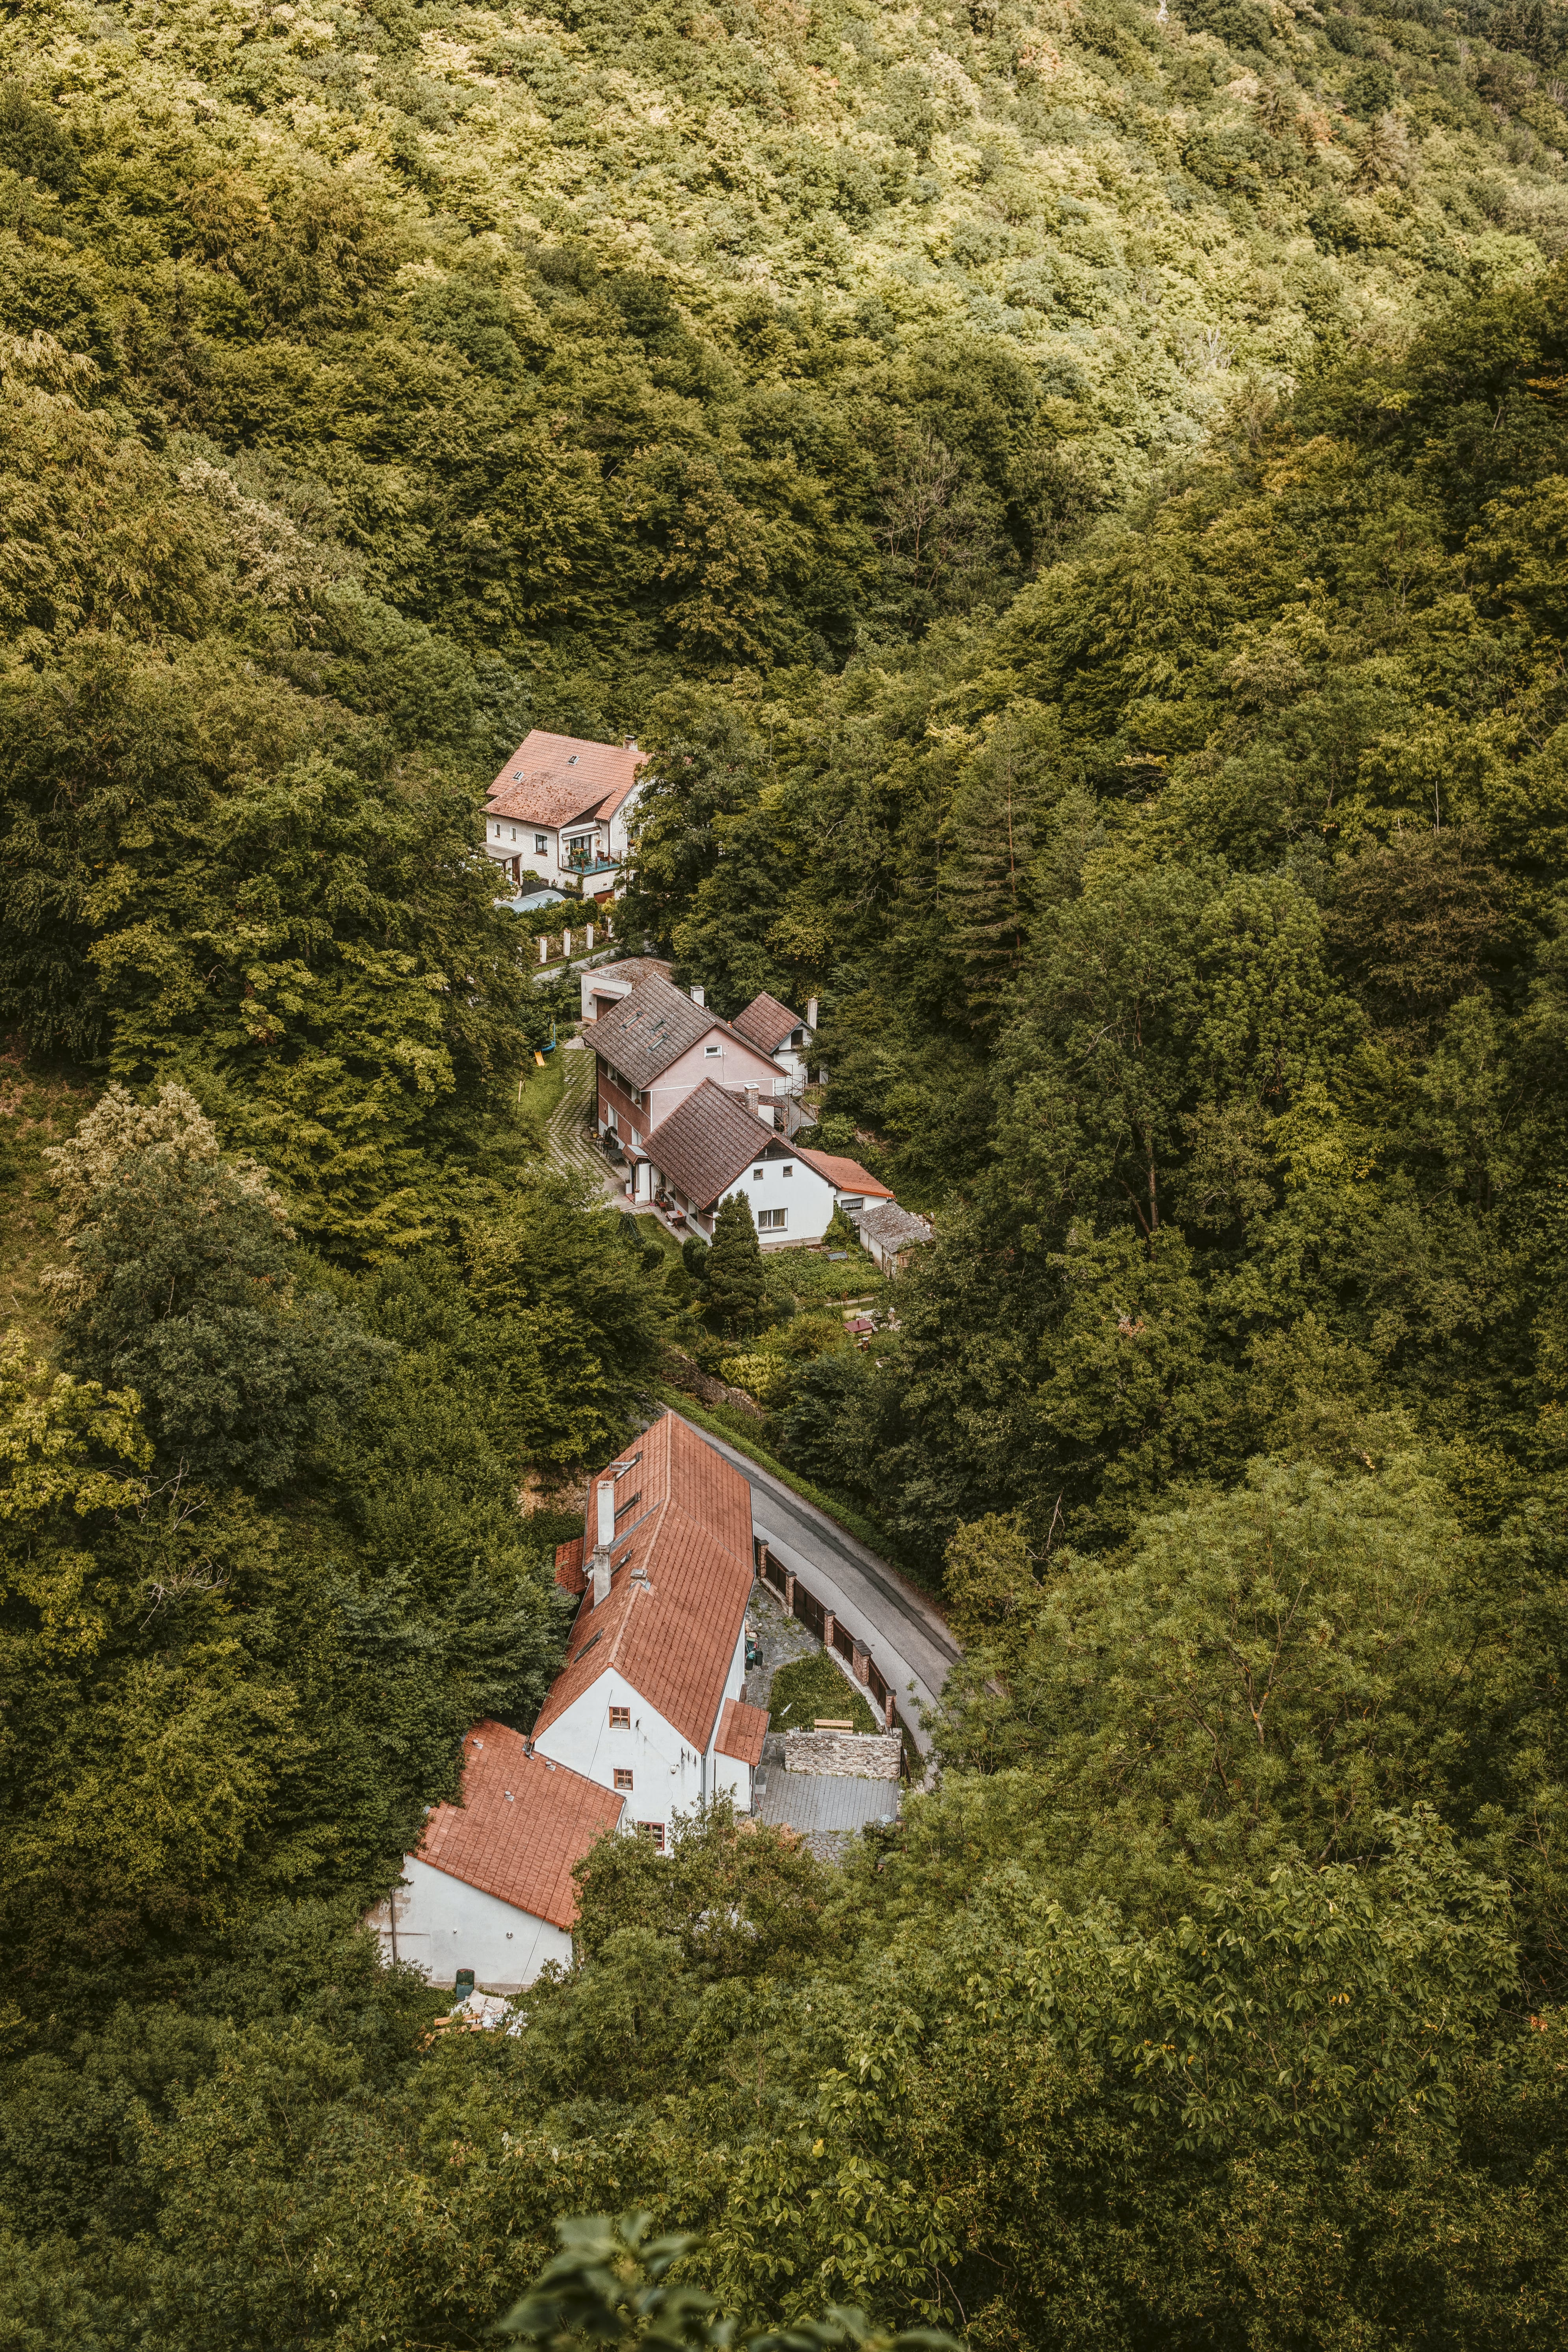 Aerial Photography of Brown and White Houses